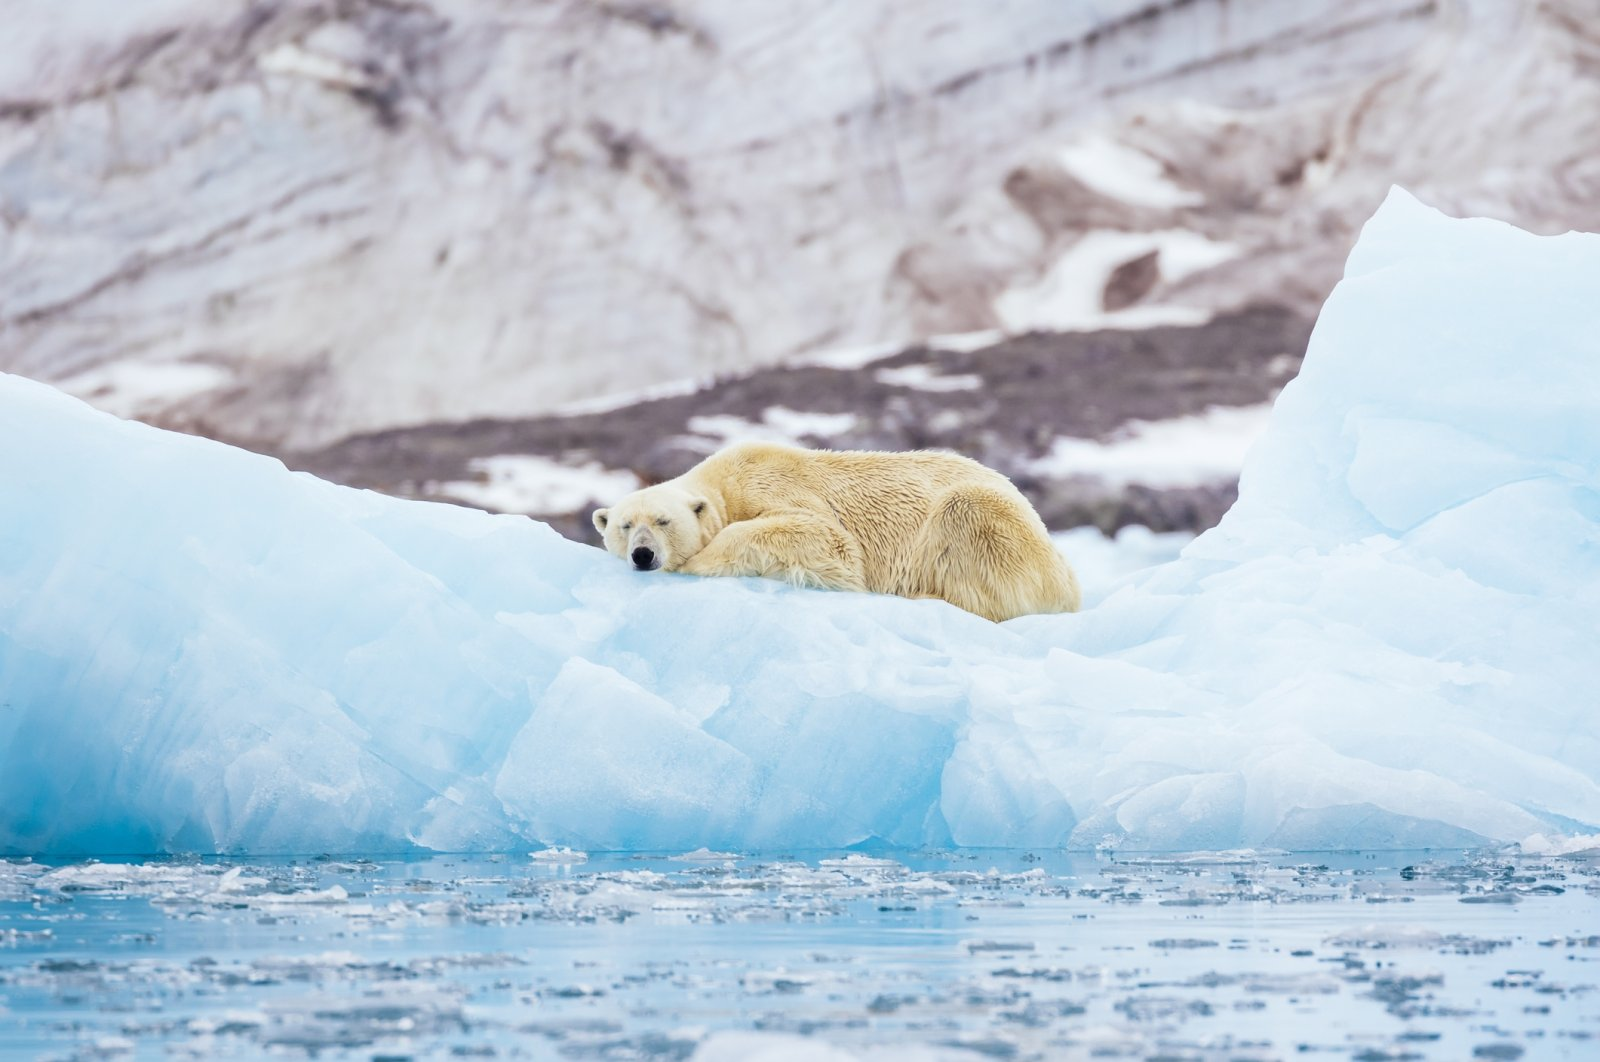 The study warns that climate change is starving polar bears into extinction. (iStock Photo)